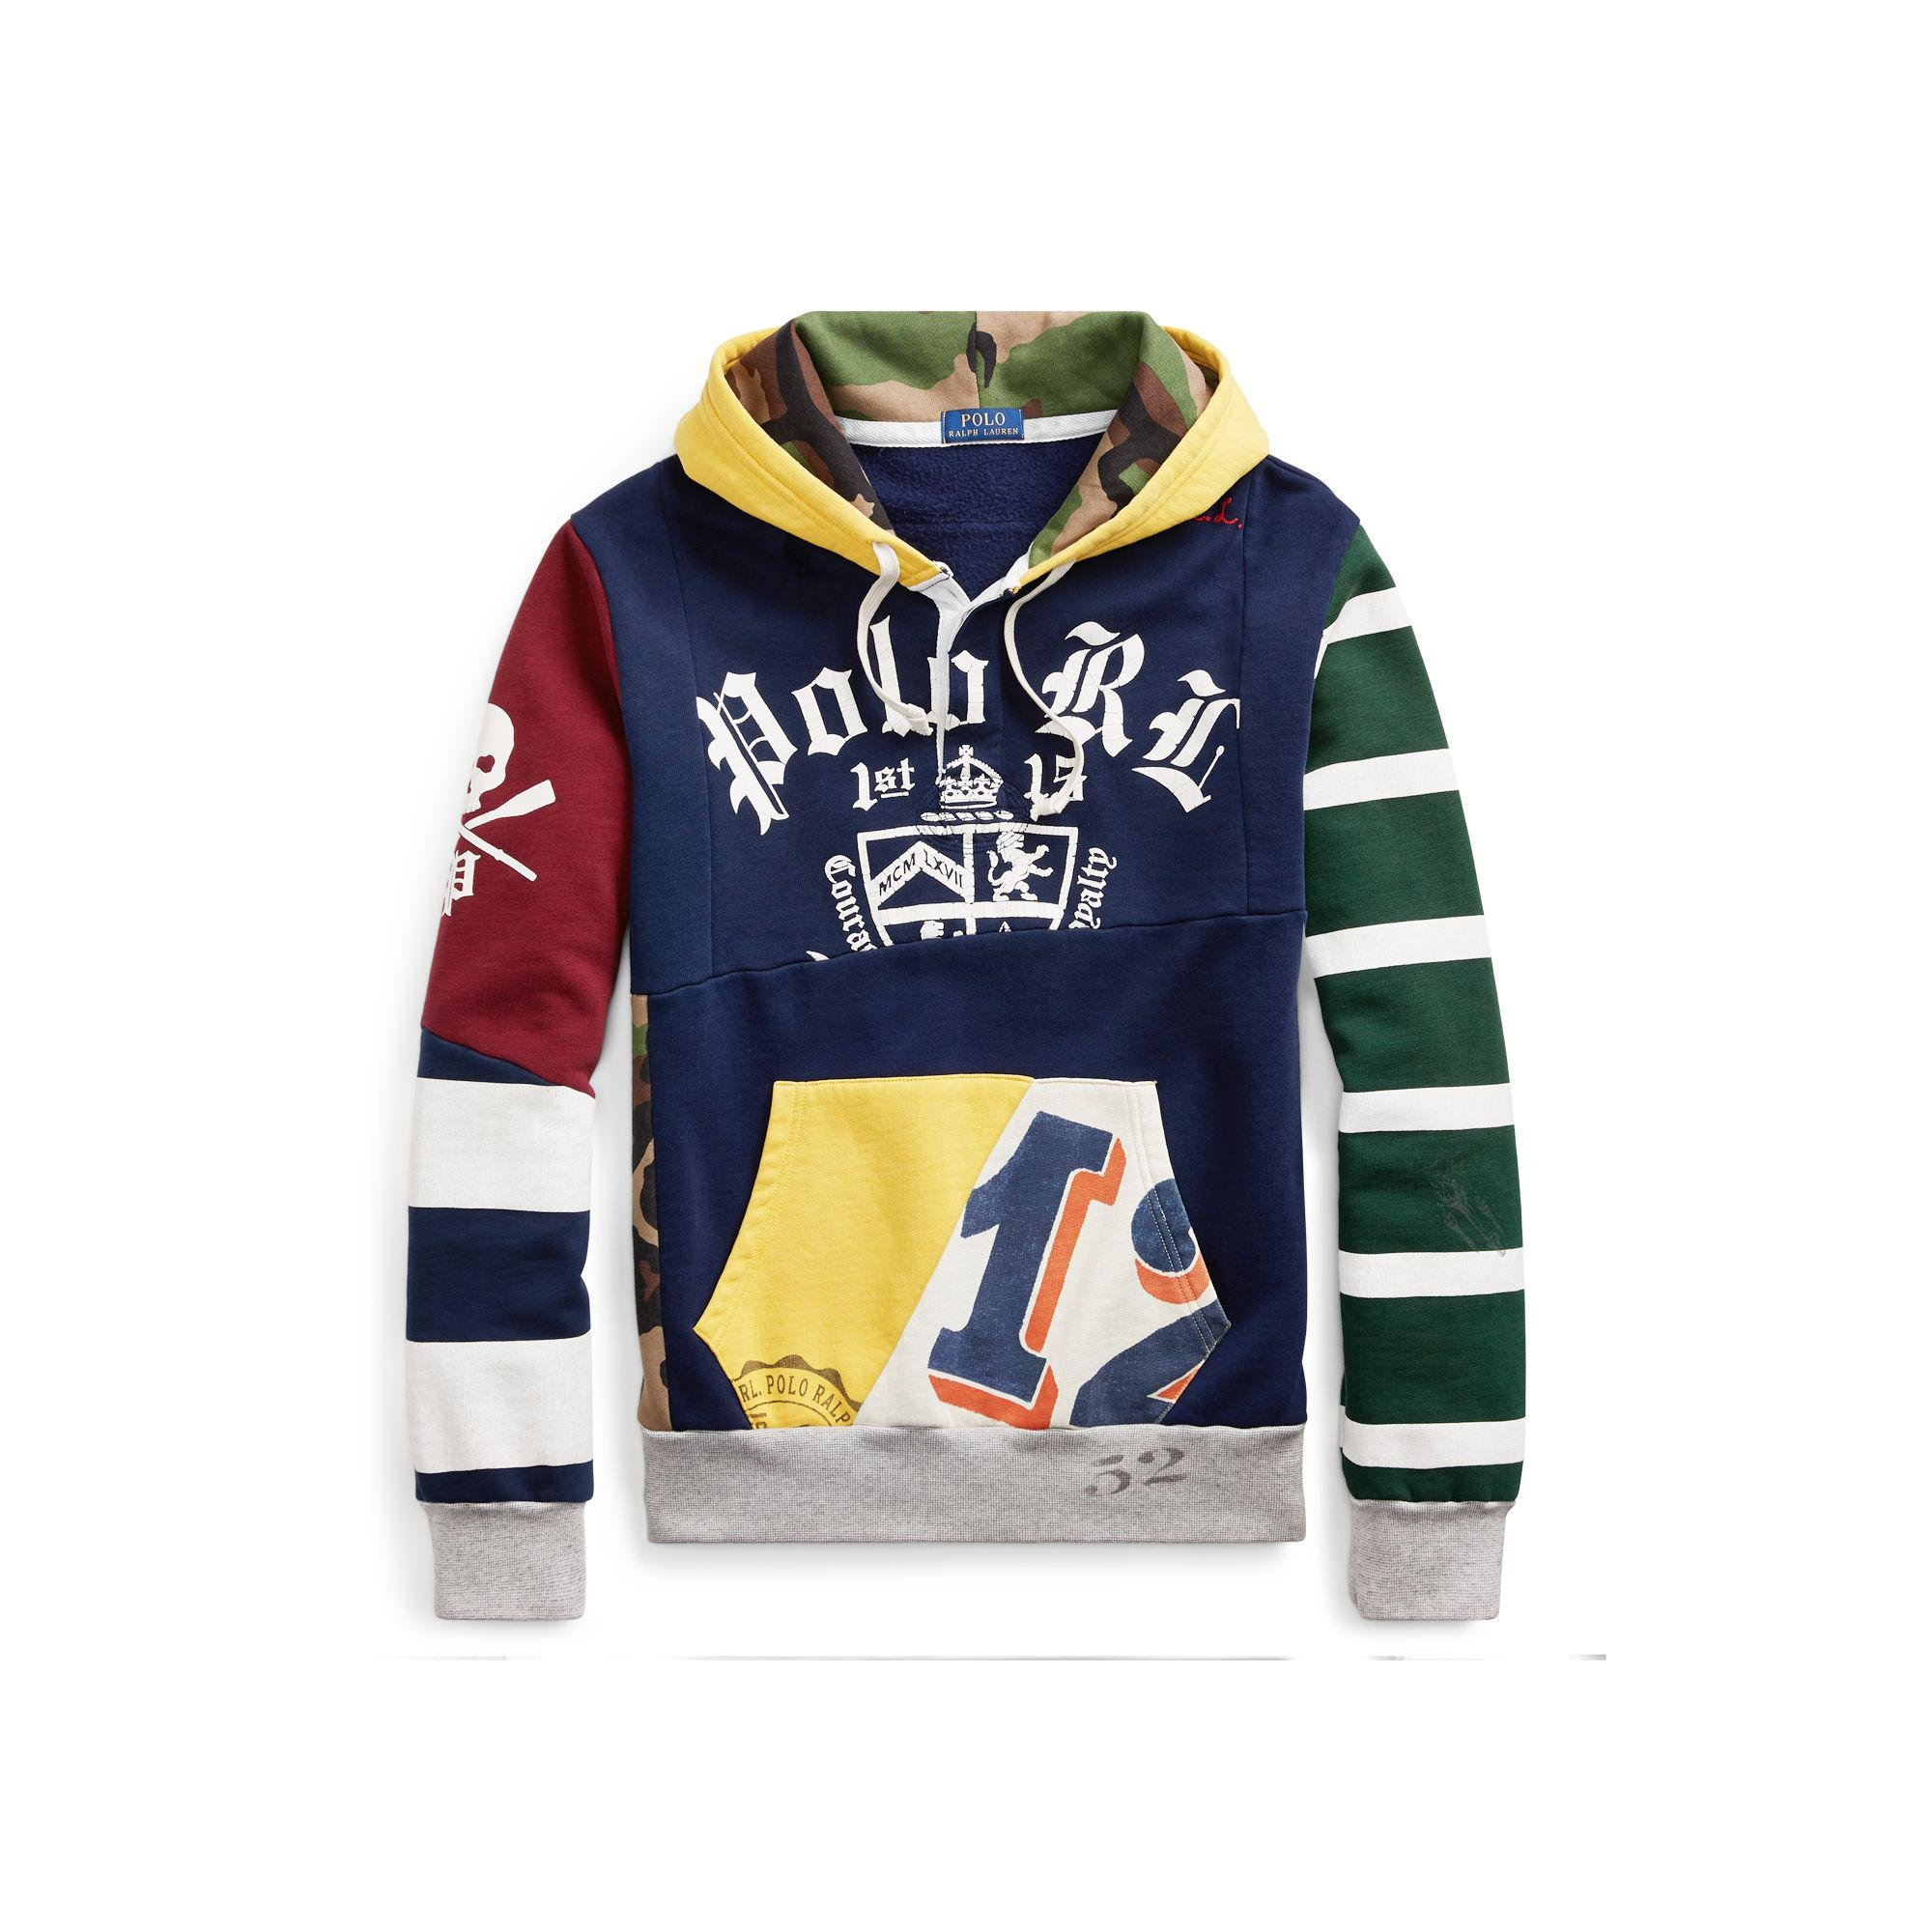 0f0c6689a71f2 Polo Ralph Lauren Patchwork Rugby Hoodie in Blue for Men - Lyst